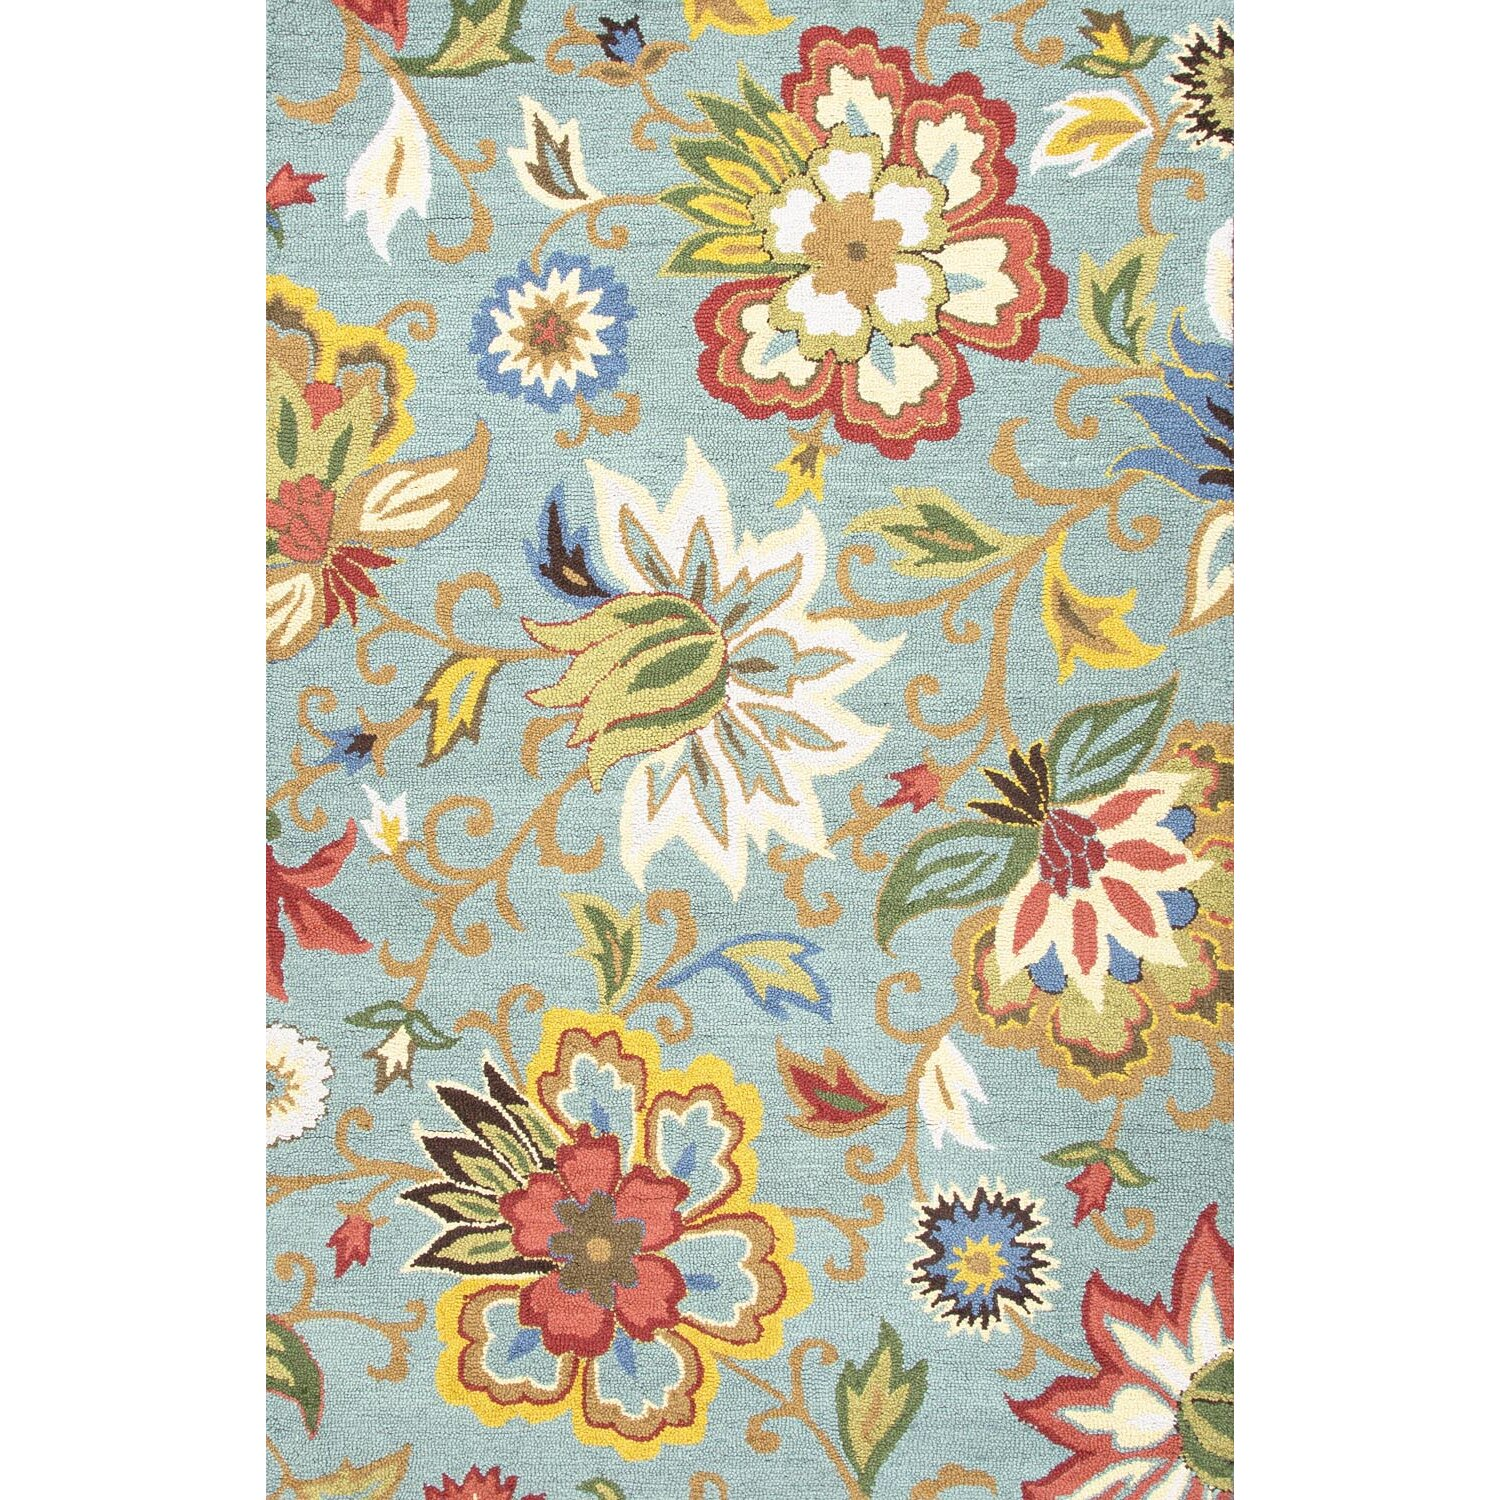 Jaipurliving Hacienda Light Turquoise Floral Area Rug